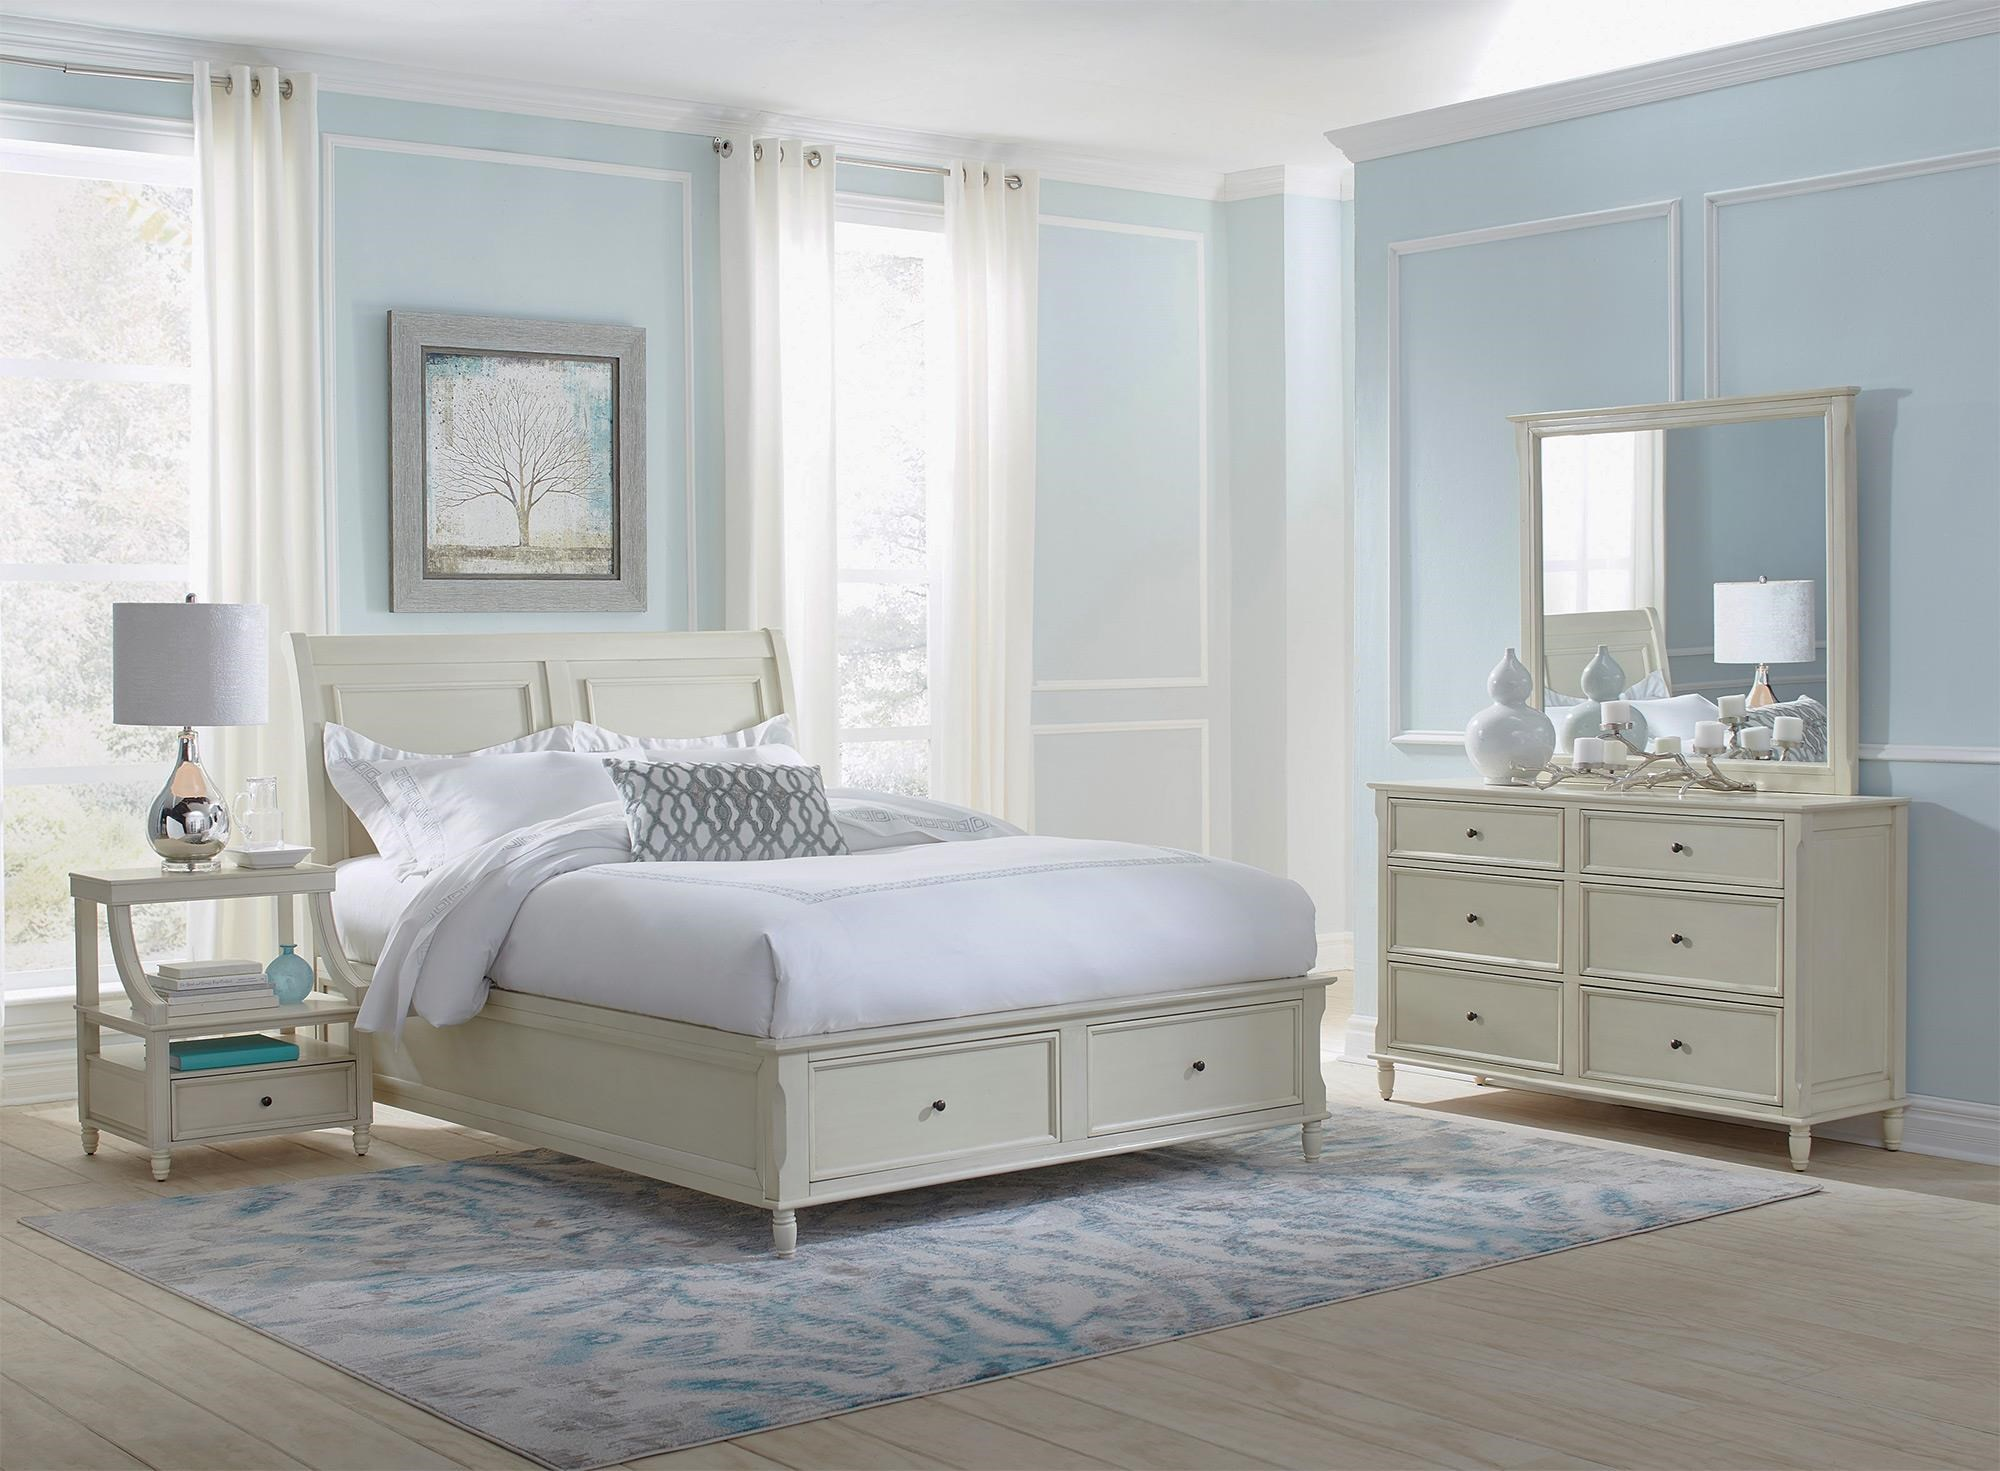 Emerson Ivory 4PC Queen Storage Bedroom Set Rotmans Bedroom